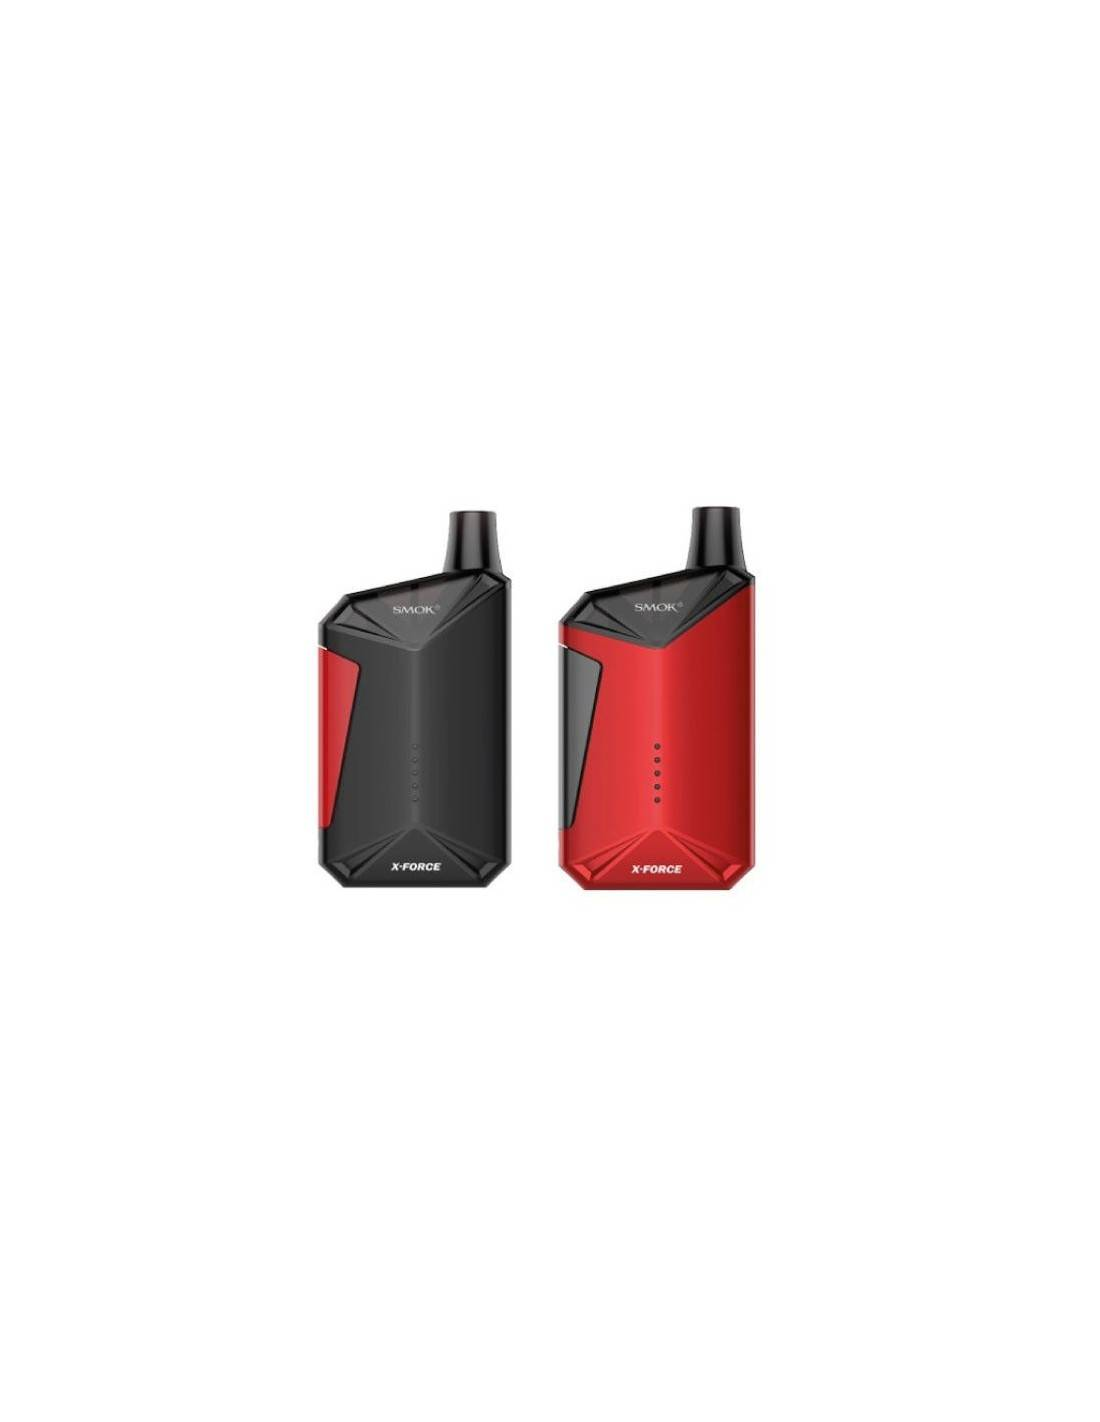 Smok Kit X- Force - Sigaretta Elettronica Aio Con Pod